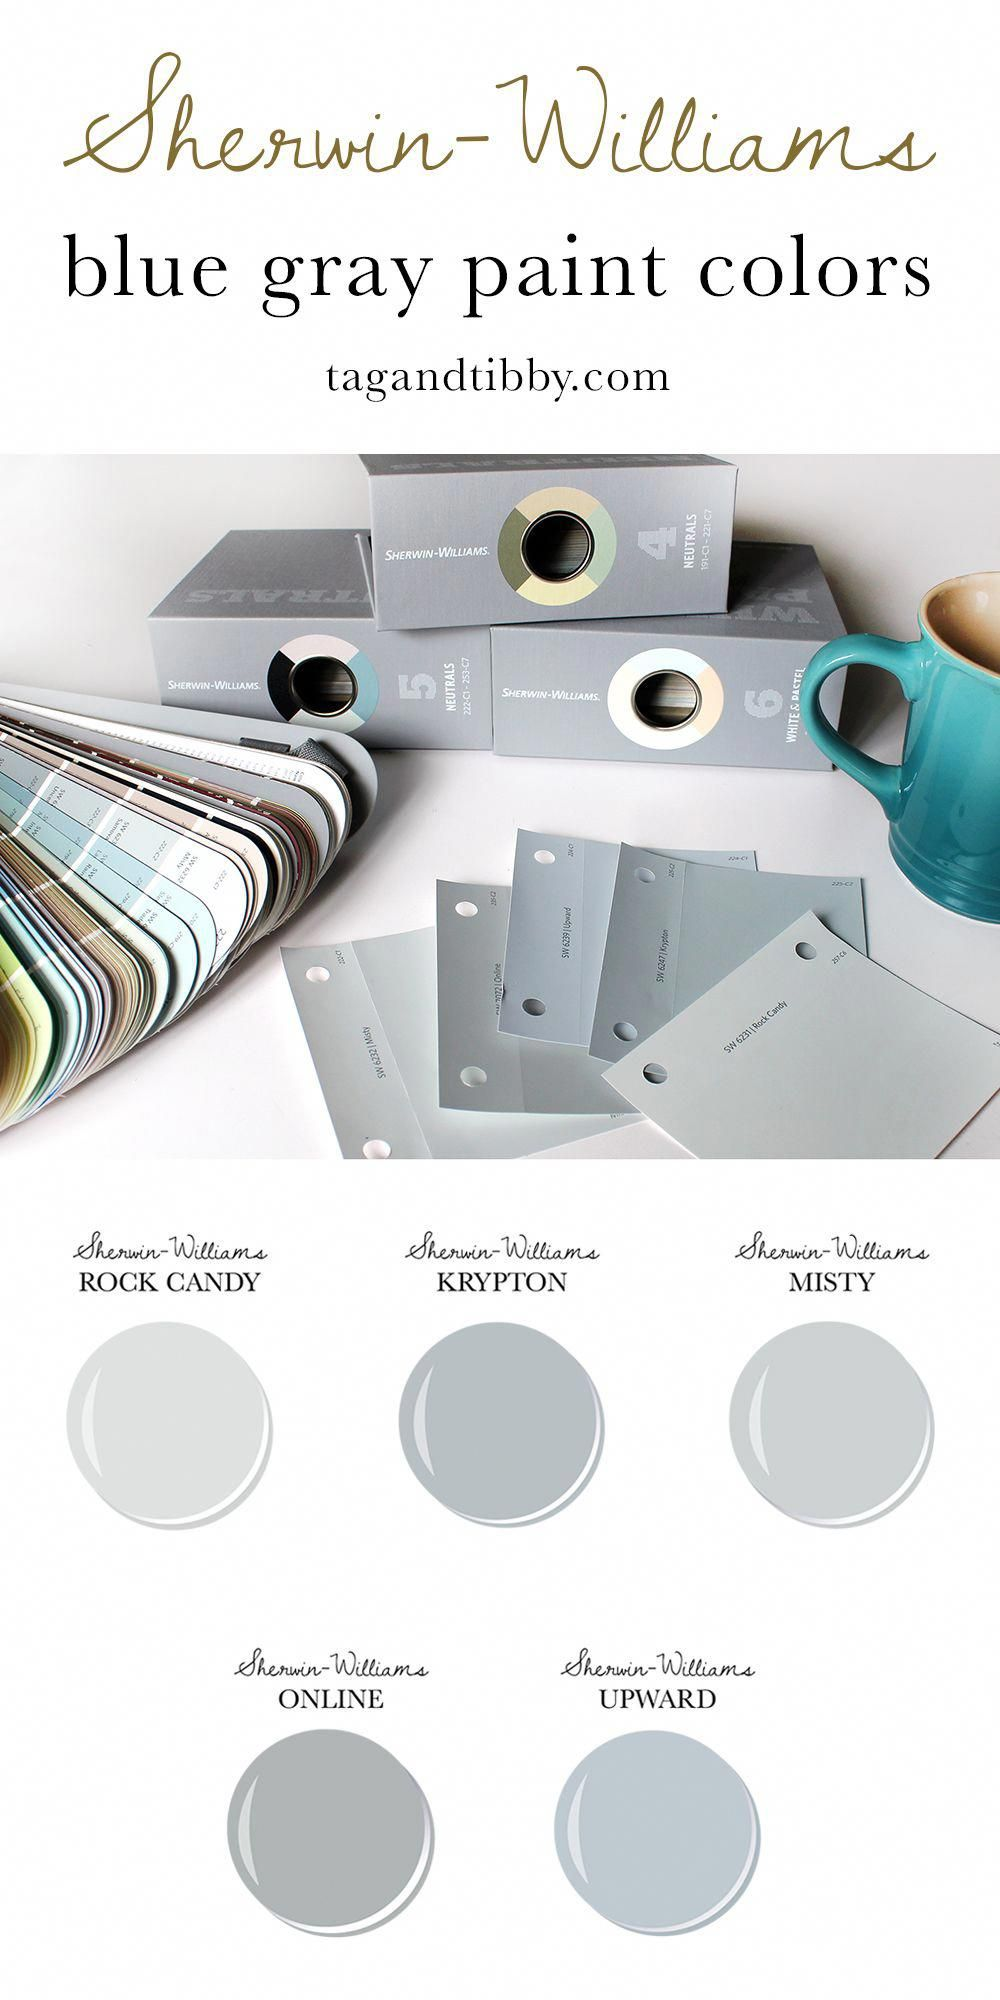 Favorite Blue Gray Color Choices By Sherwin Williams Farmhousepaintcolors Blue Gray Paint Colors Blue Gray Paint Paint Colors For Home